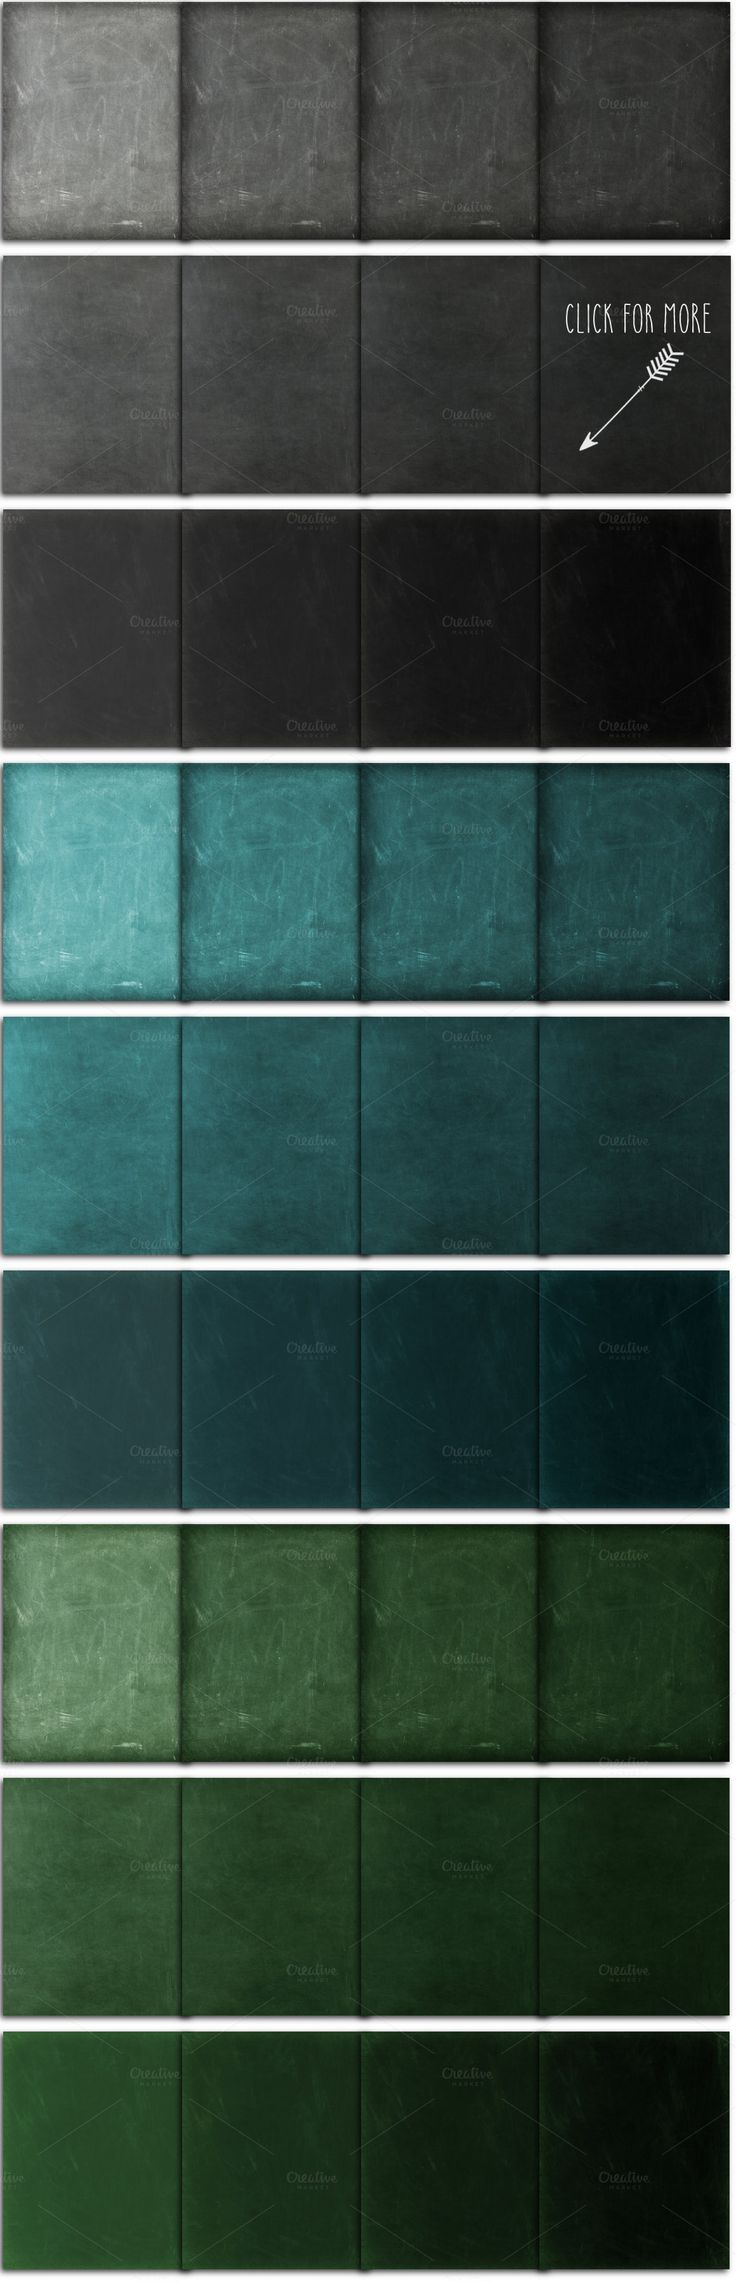 36 Chalkboard Backgrounds XL Edition